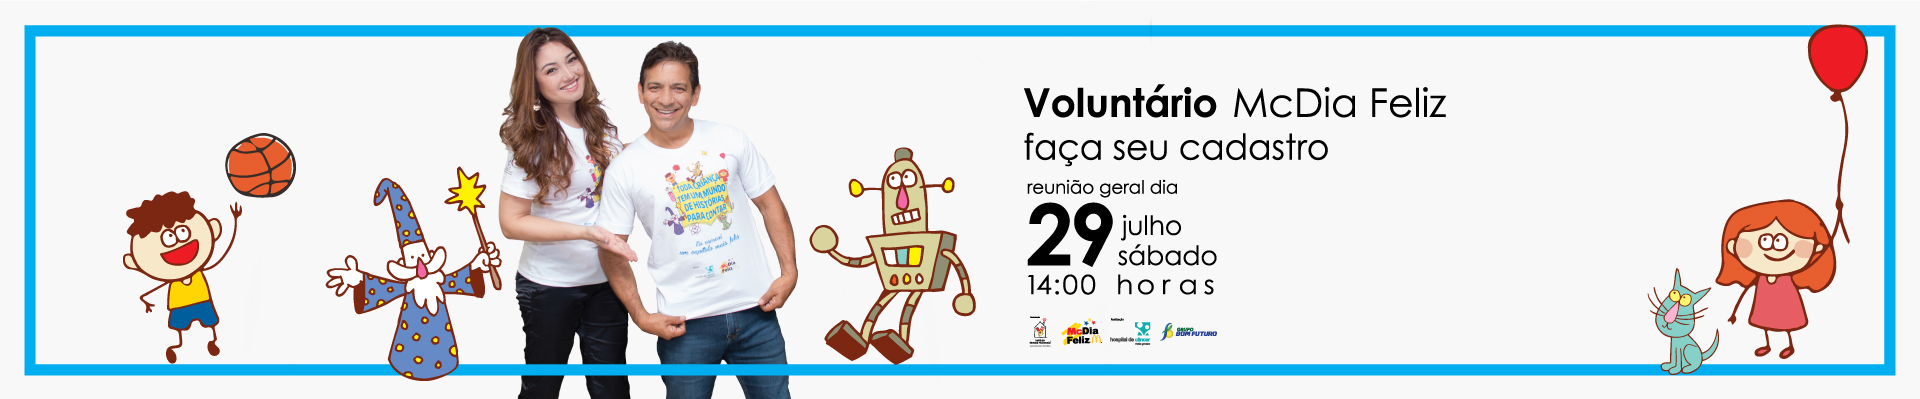 banner-site-voluntarios